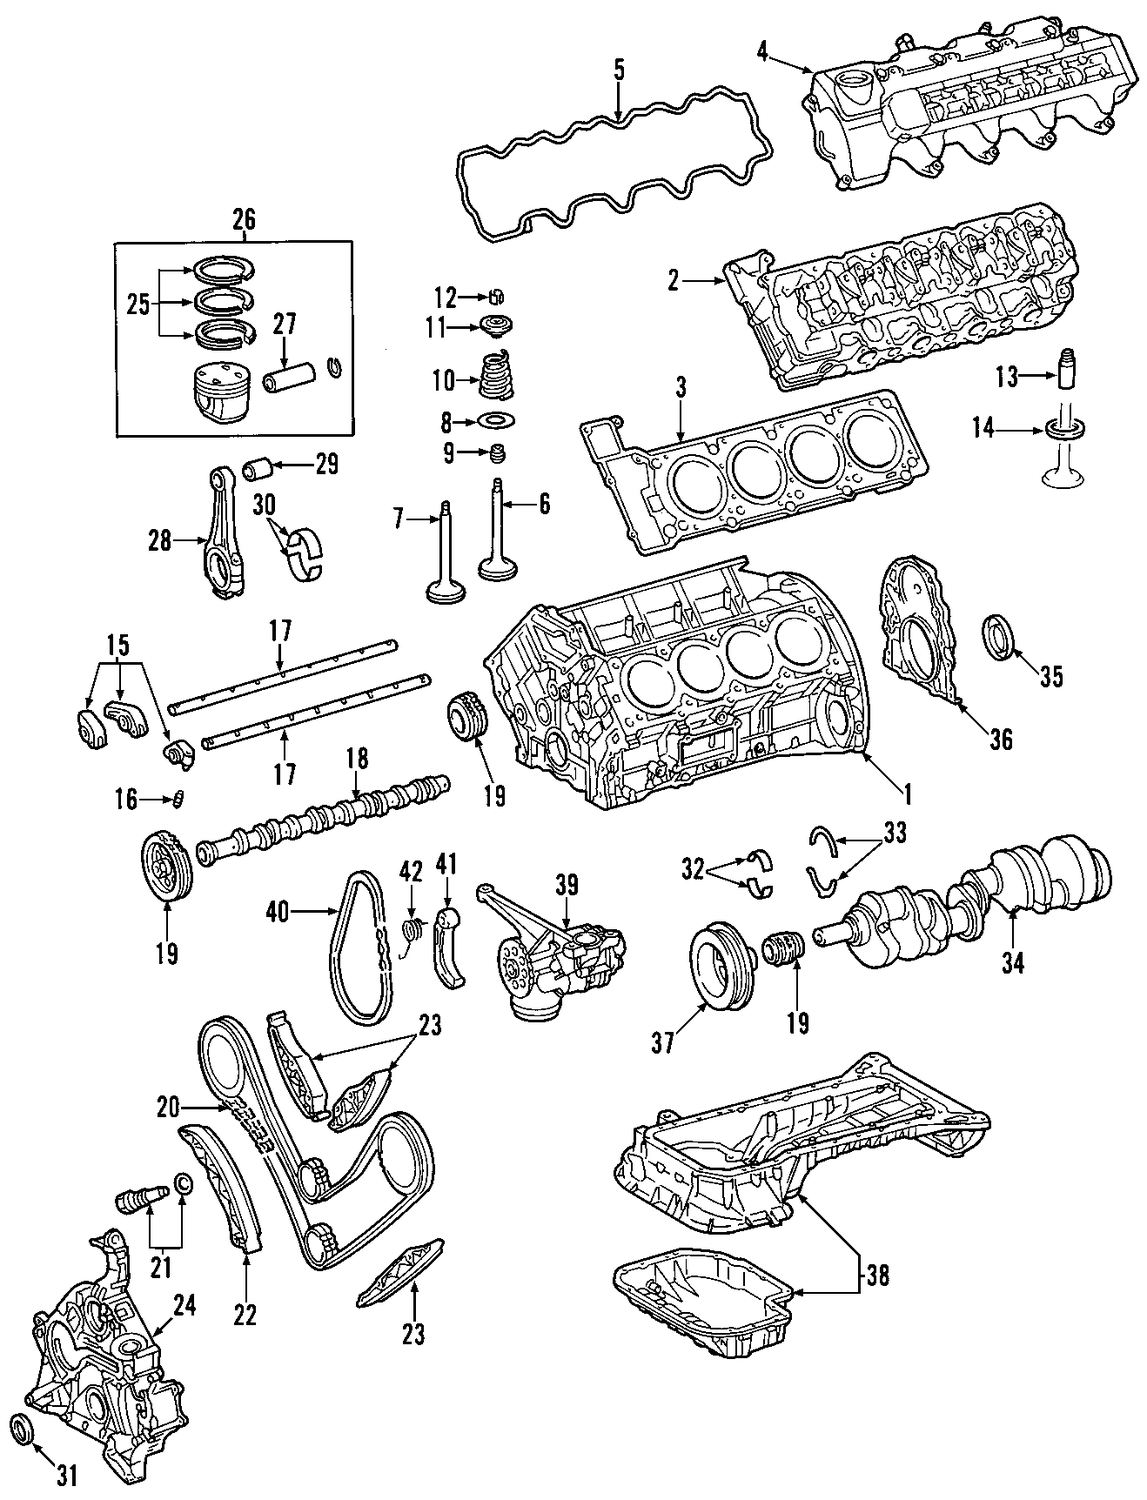 Mercedes Benz Engine Schematics Guide And Troubleshooting Of Diesel Diagram Parts Diagrams Wiring Origin Rh 18 2 Darklifezine De Service Manual 601